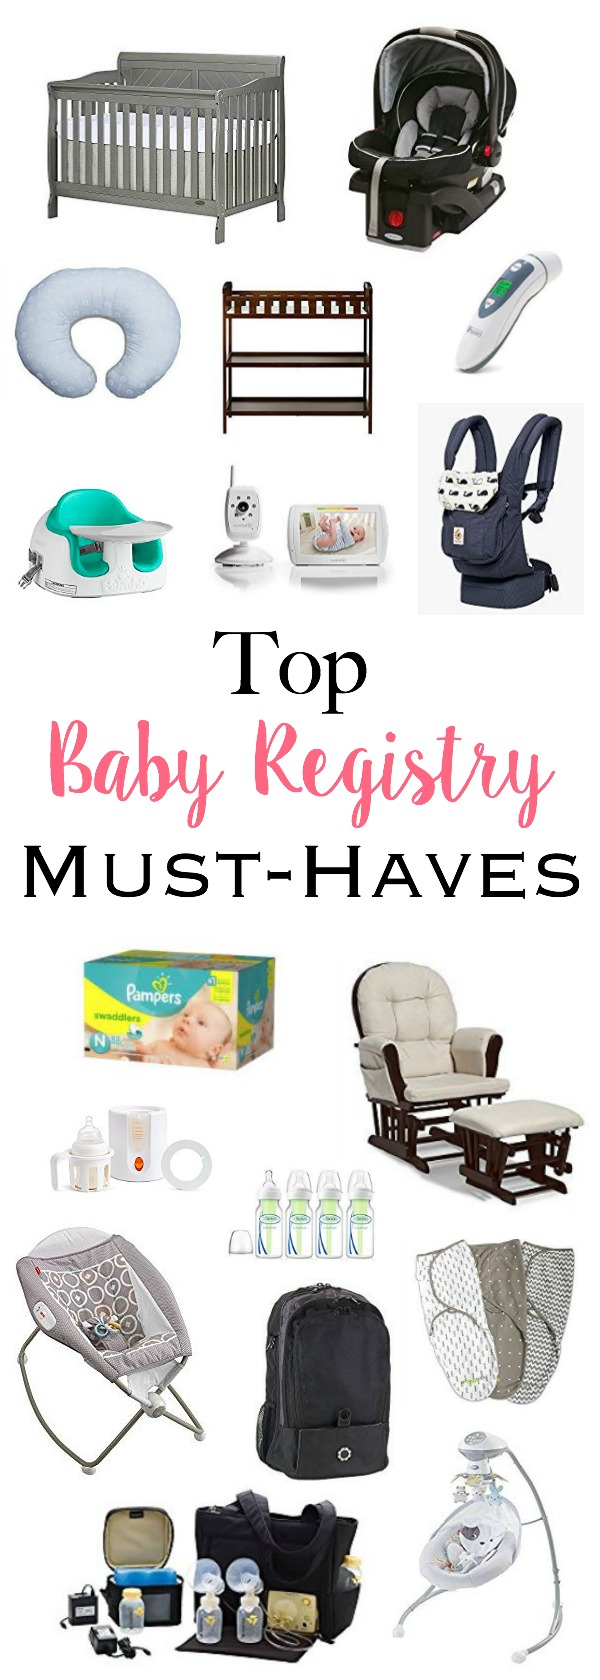 Top Baby Registry Must-Haves | Mama Bear Bliss